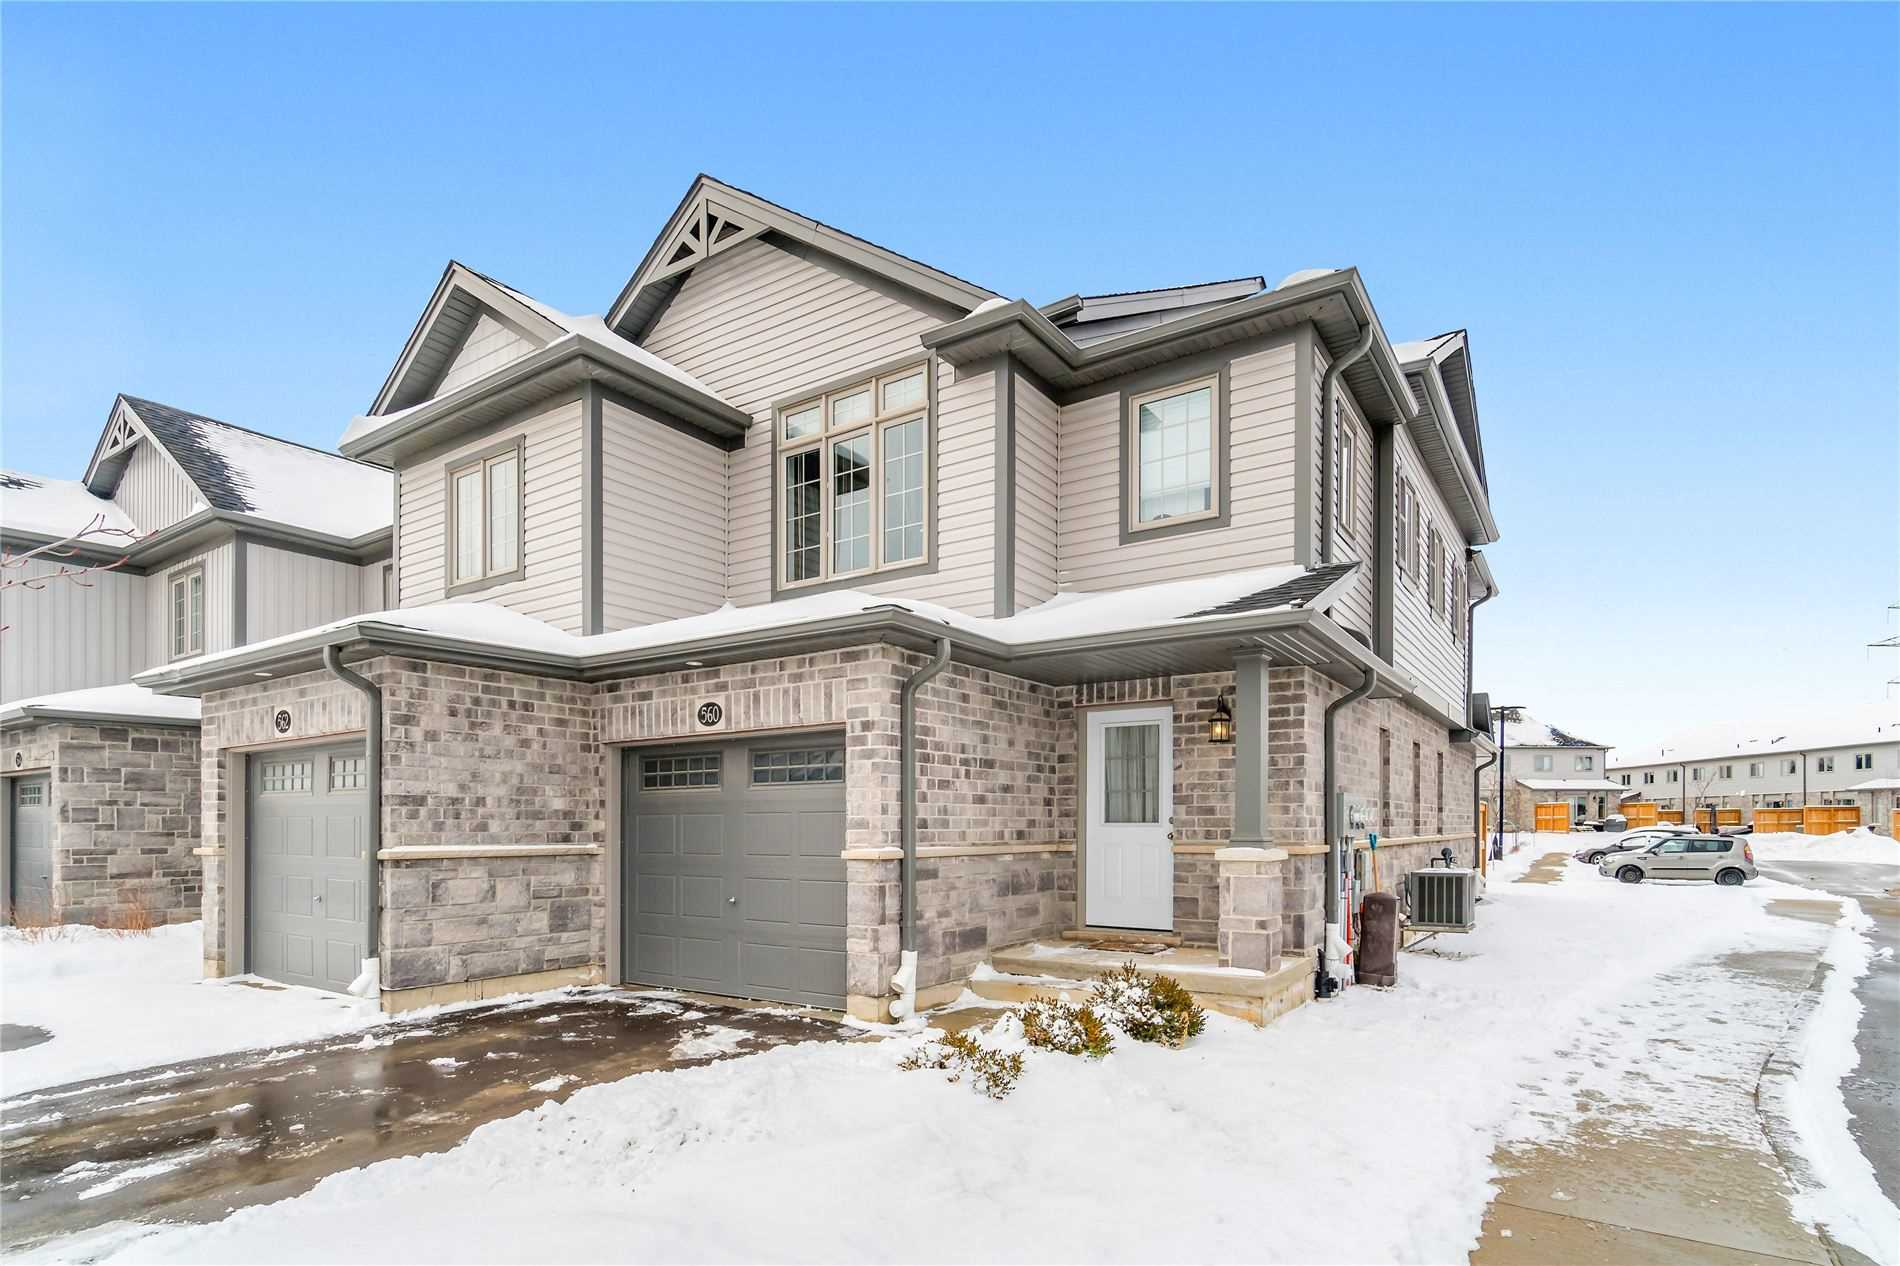 pictures of house for sale MLS: X4690191 located at 560 Blair Creek Dr, Kitchener N2P0E4